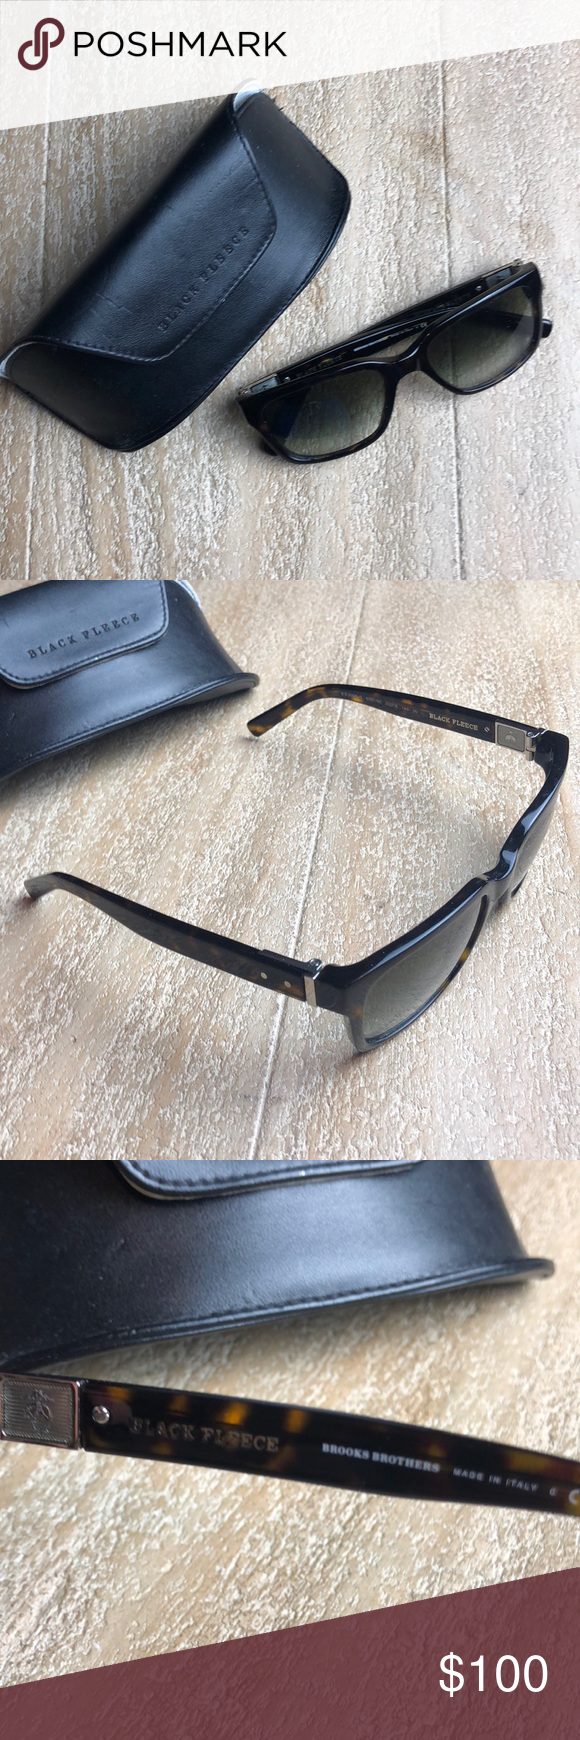 b8f1faa943cd EUC Brooks Brothers Black Fleece Wayfarers Excellent condition. No  scratches. Gorgeous sunglasses Black Fleece Brooks Brothers. No longer  available.